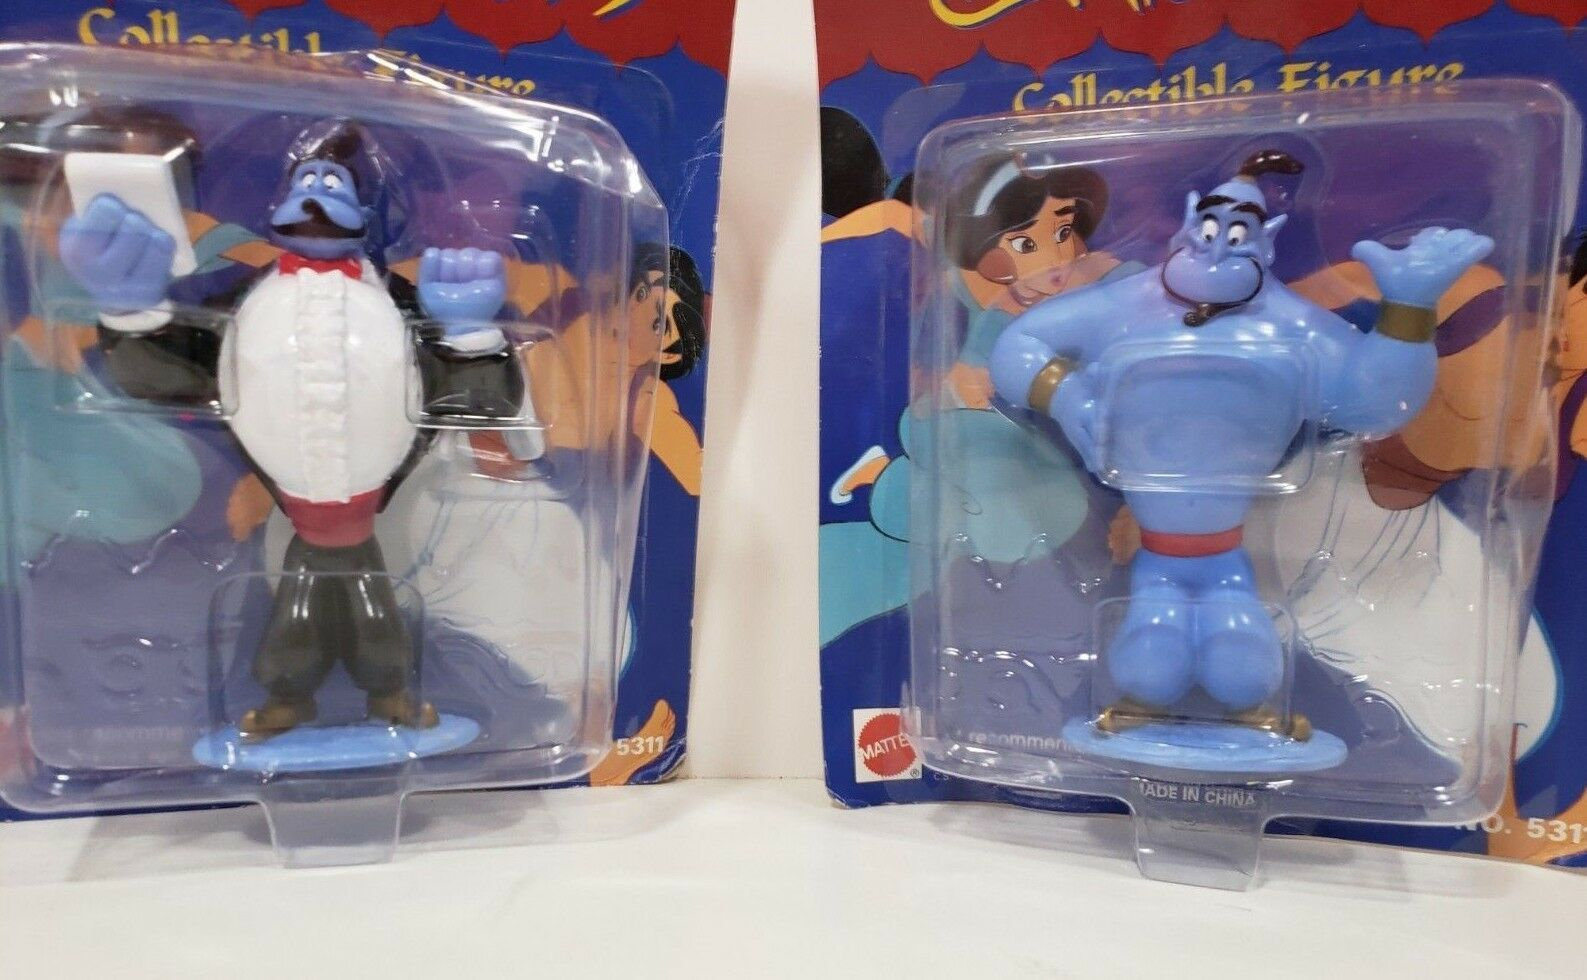 Set of 2 Mattel Disney's Alladdin Collectible figure - Genie image 2